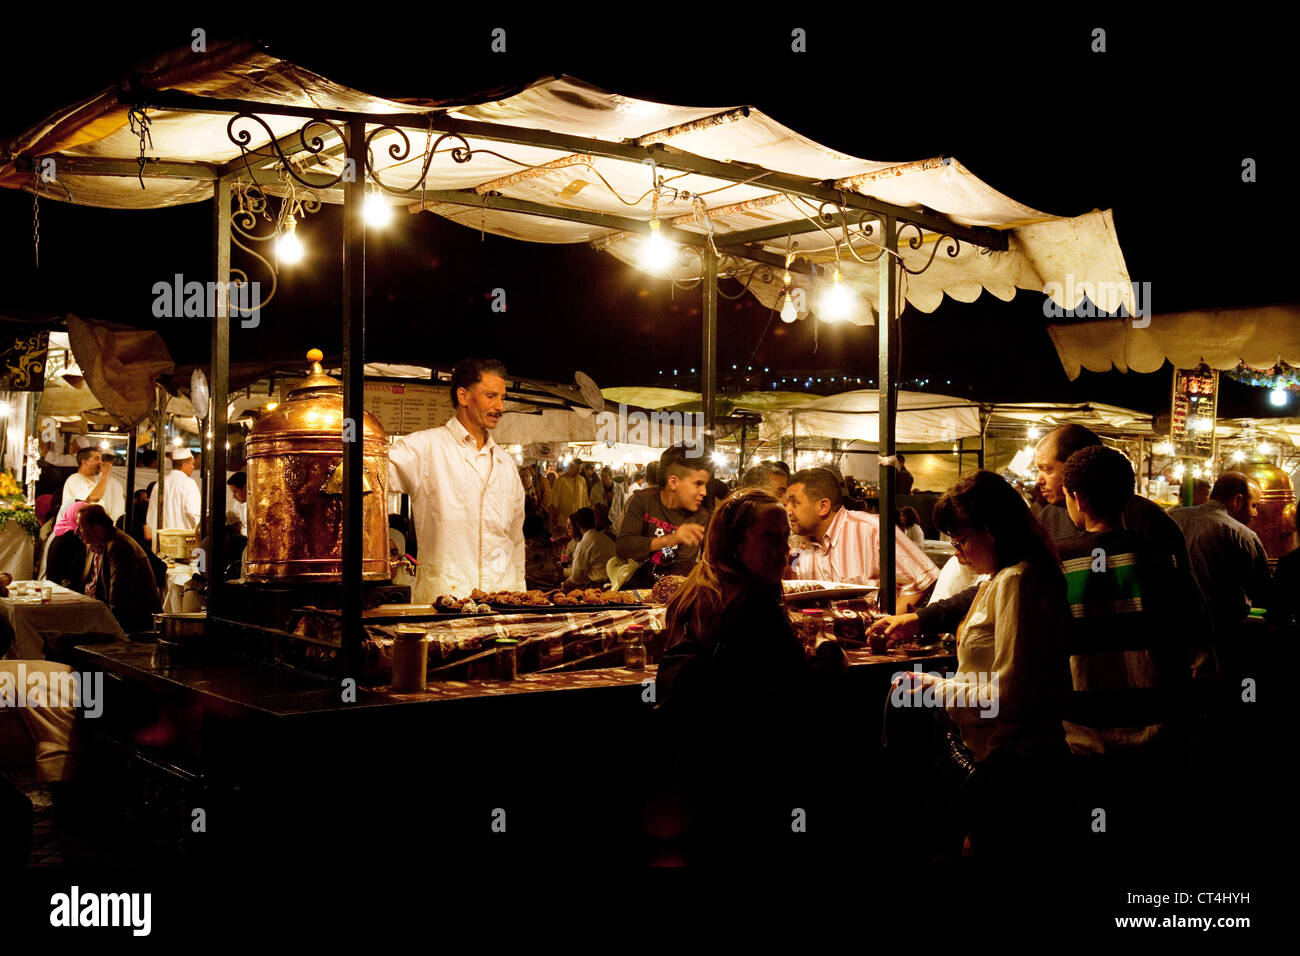 Local people eating street food at food stalls in Djemaa el Fna square at night, Marrakech Morocco Africa - Stock Image